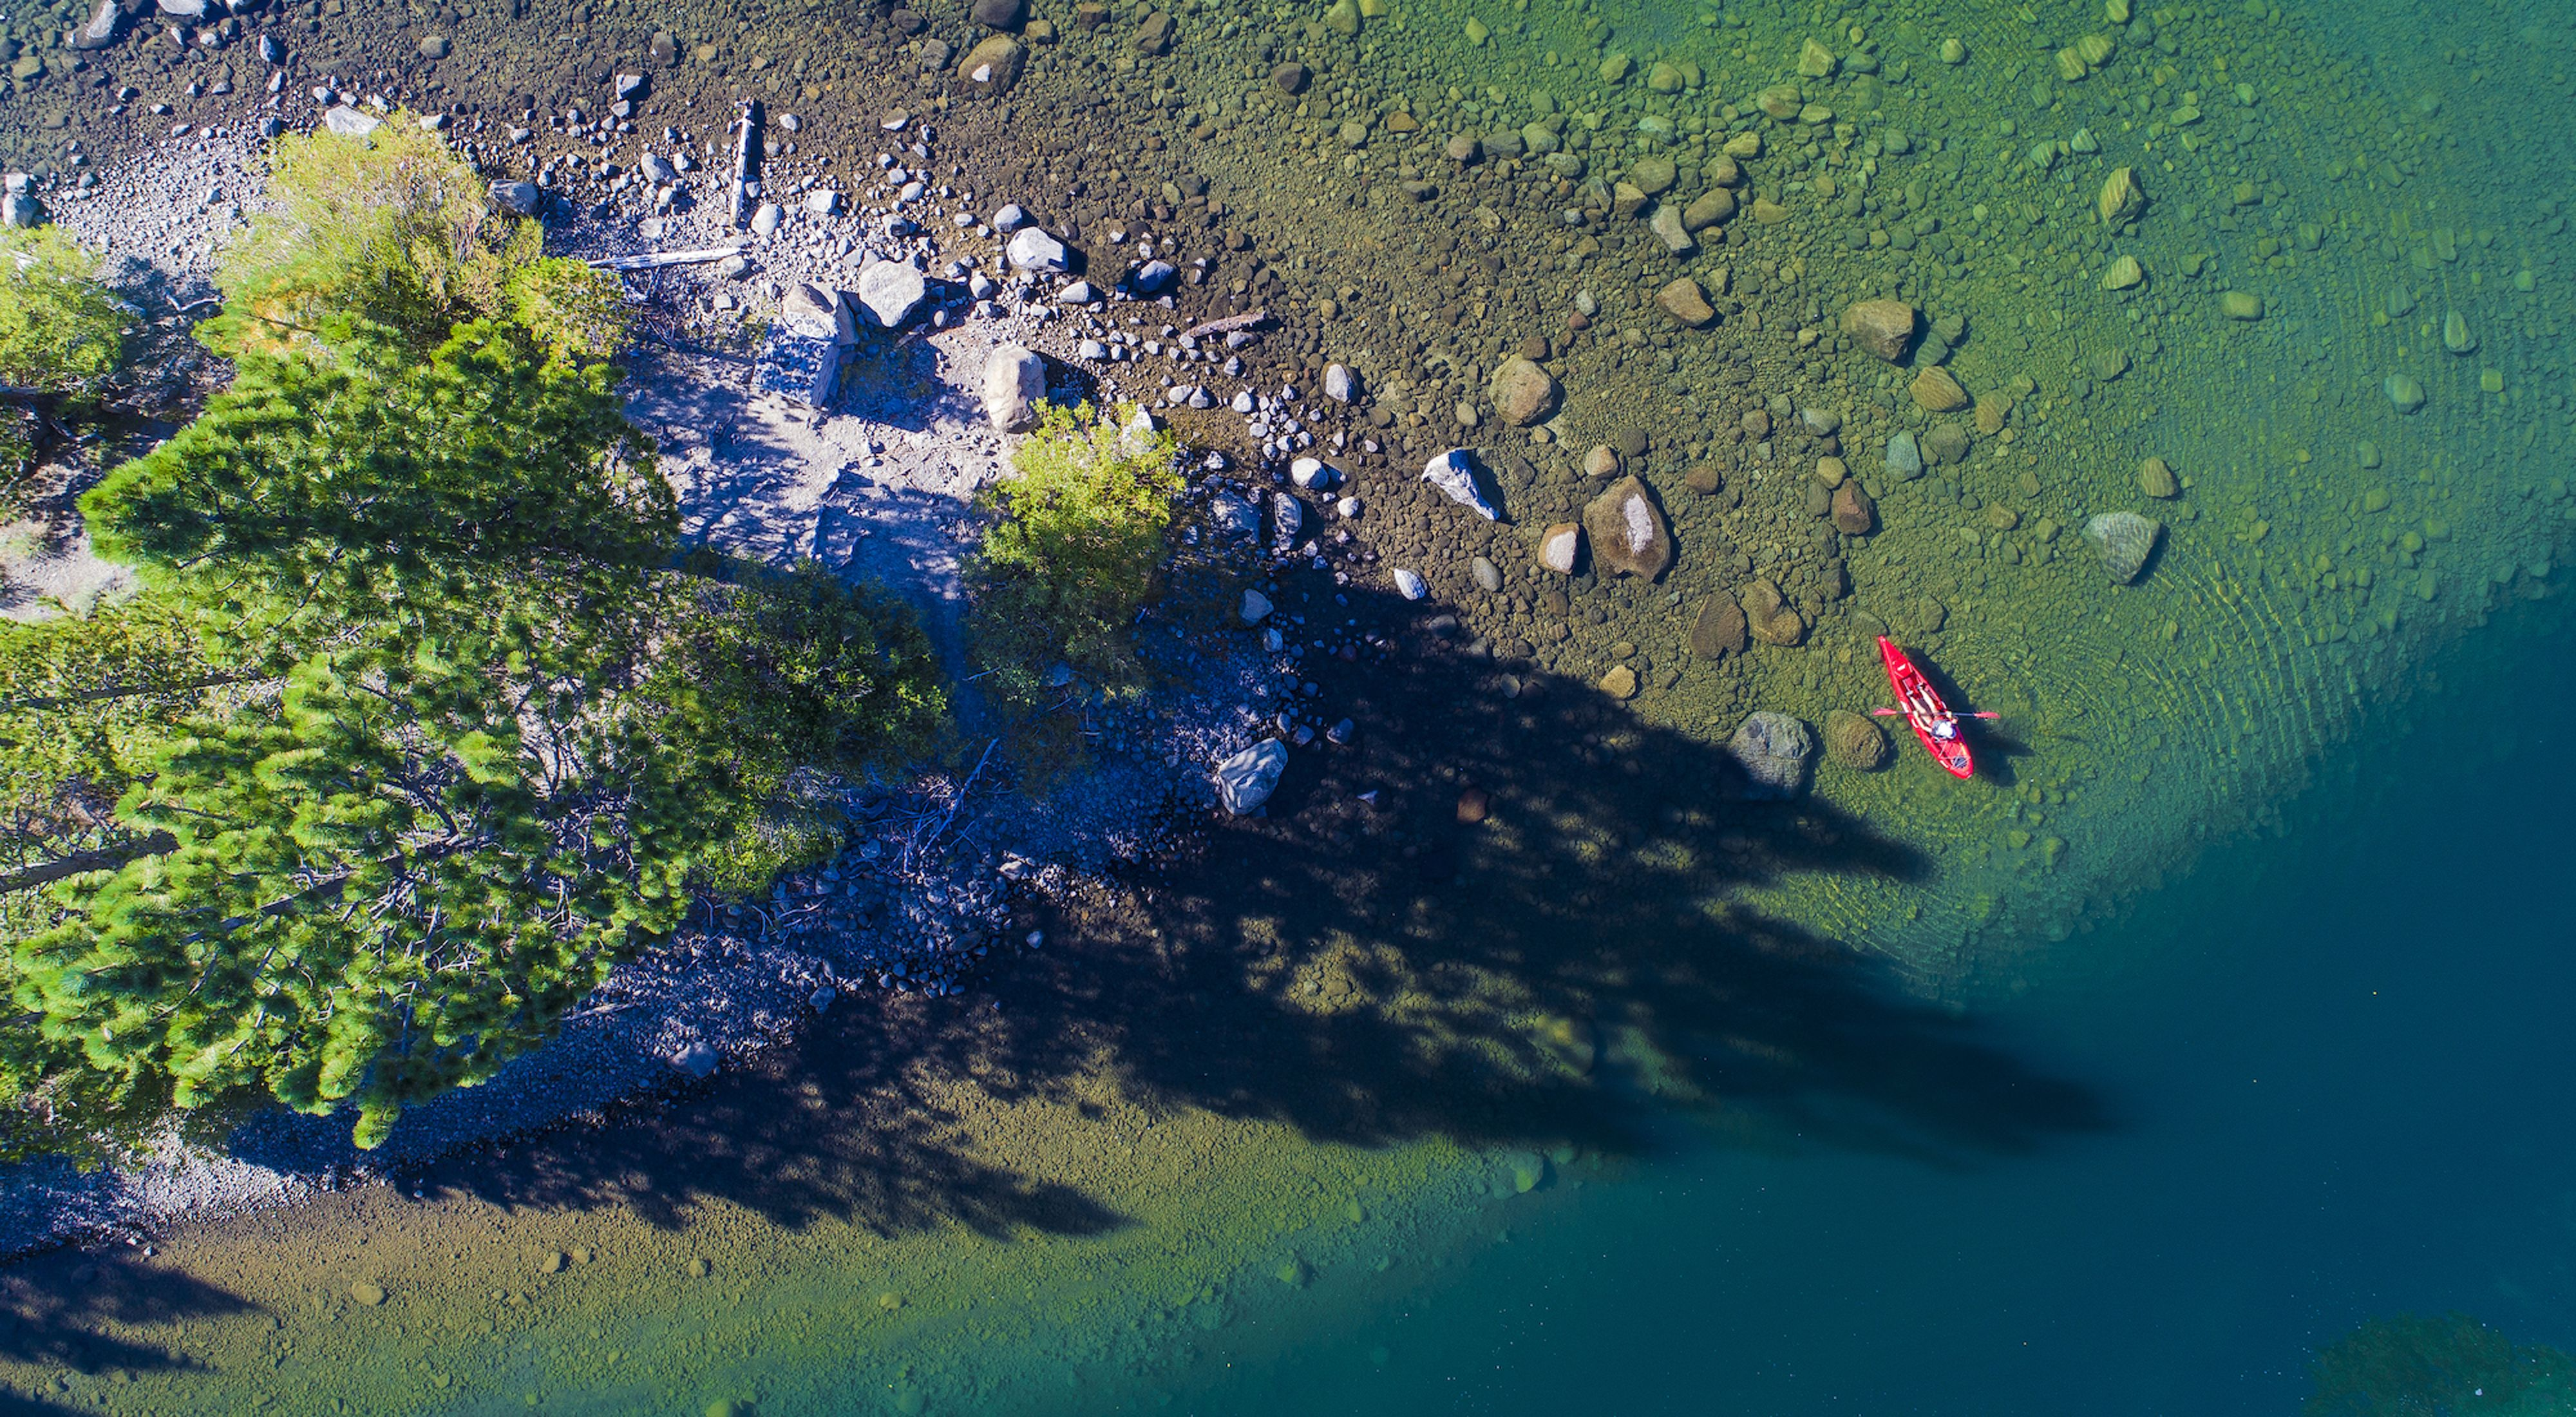 Looking down on the clear blue-green water of Independence Lake with a single red kayak floating near the shoreline.